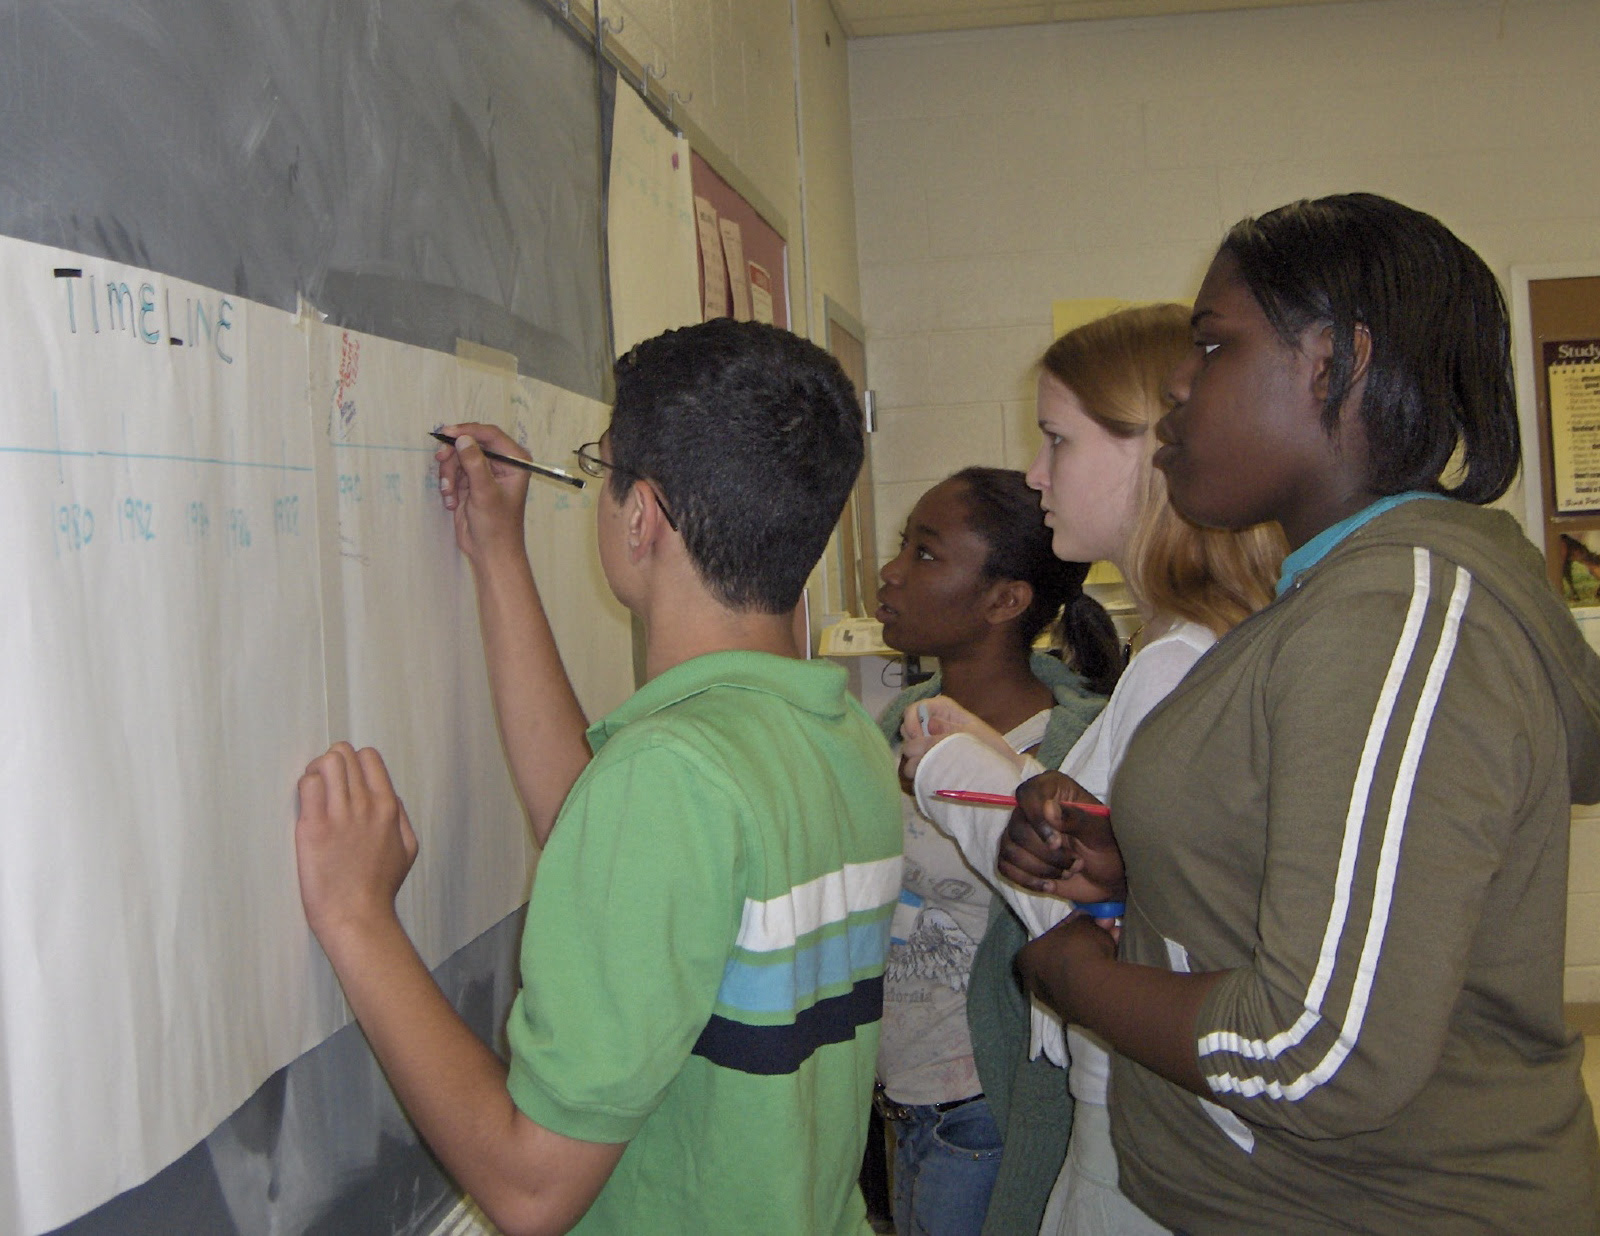 A group of students writing on a chalkboard